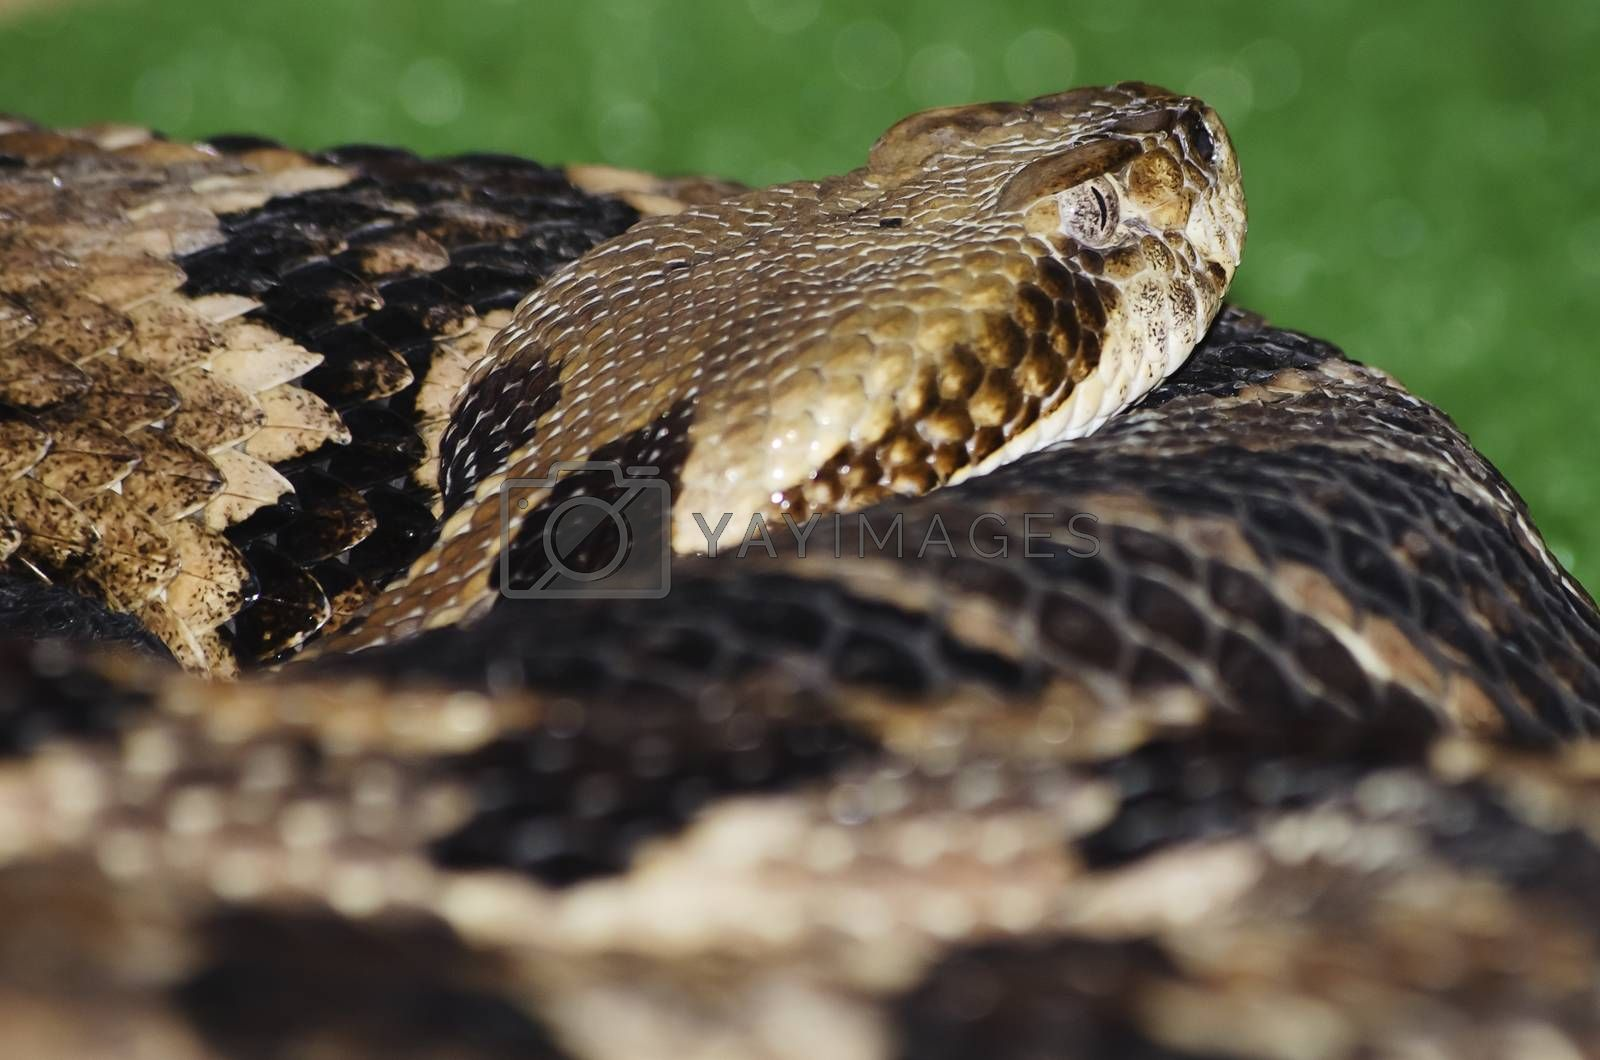 Photo of the Banded Rattlesnake Over Green